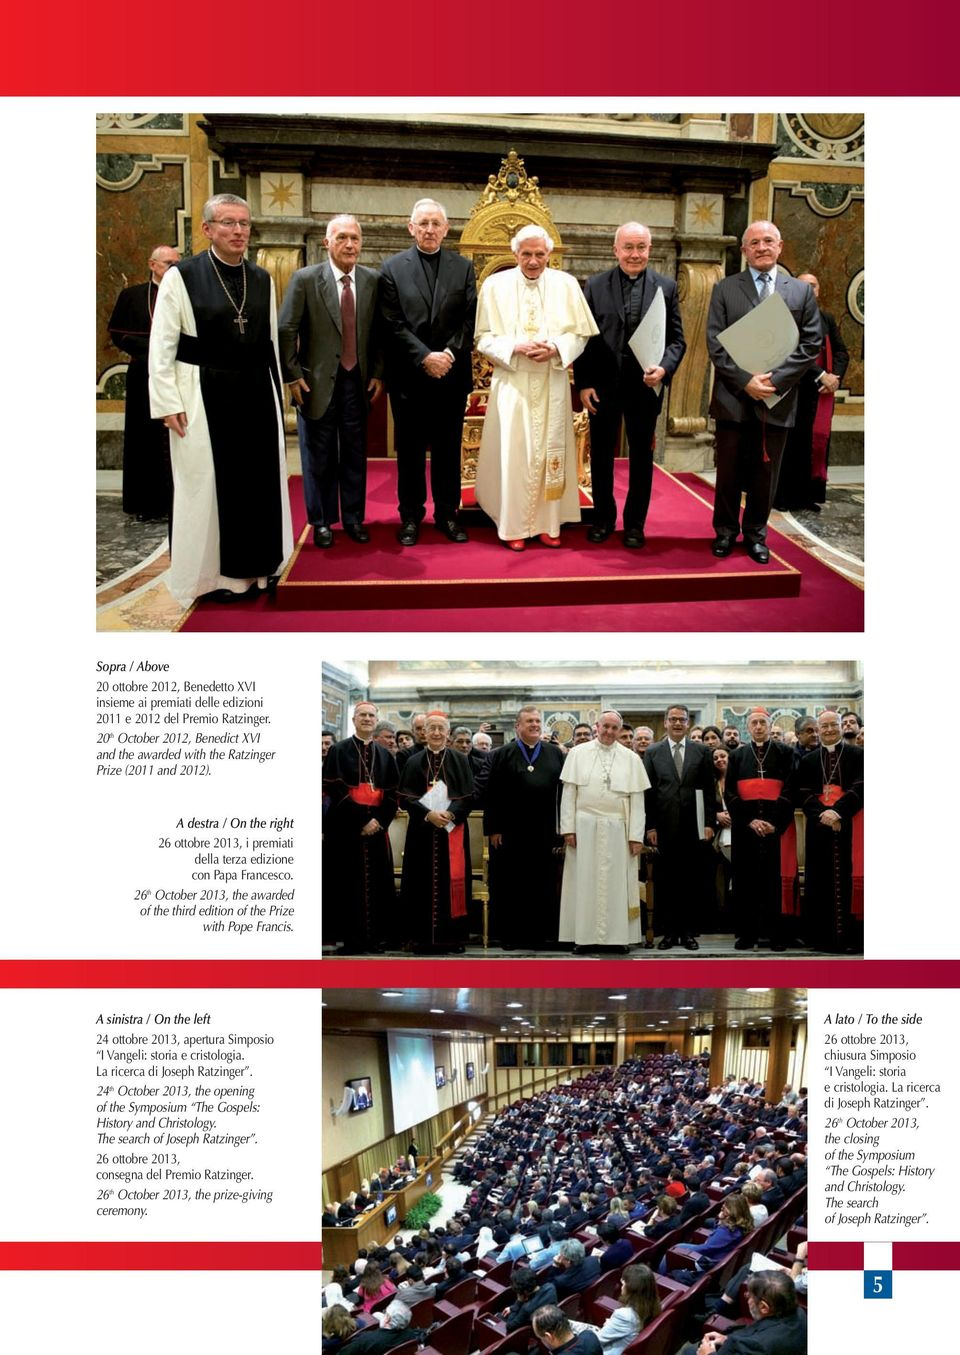 26 th October 2013, the awarded of the third edition of the Prize with Pope Francis. A sinistra / On the left 24 ottobre 2013, apertura Simposio I Vangeli: storia e cristologia.